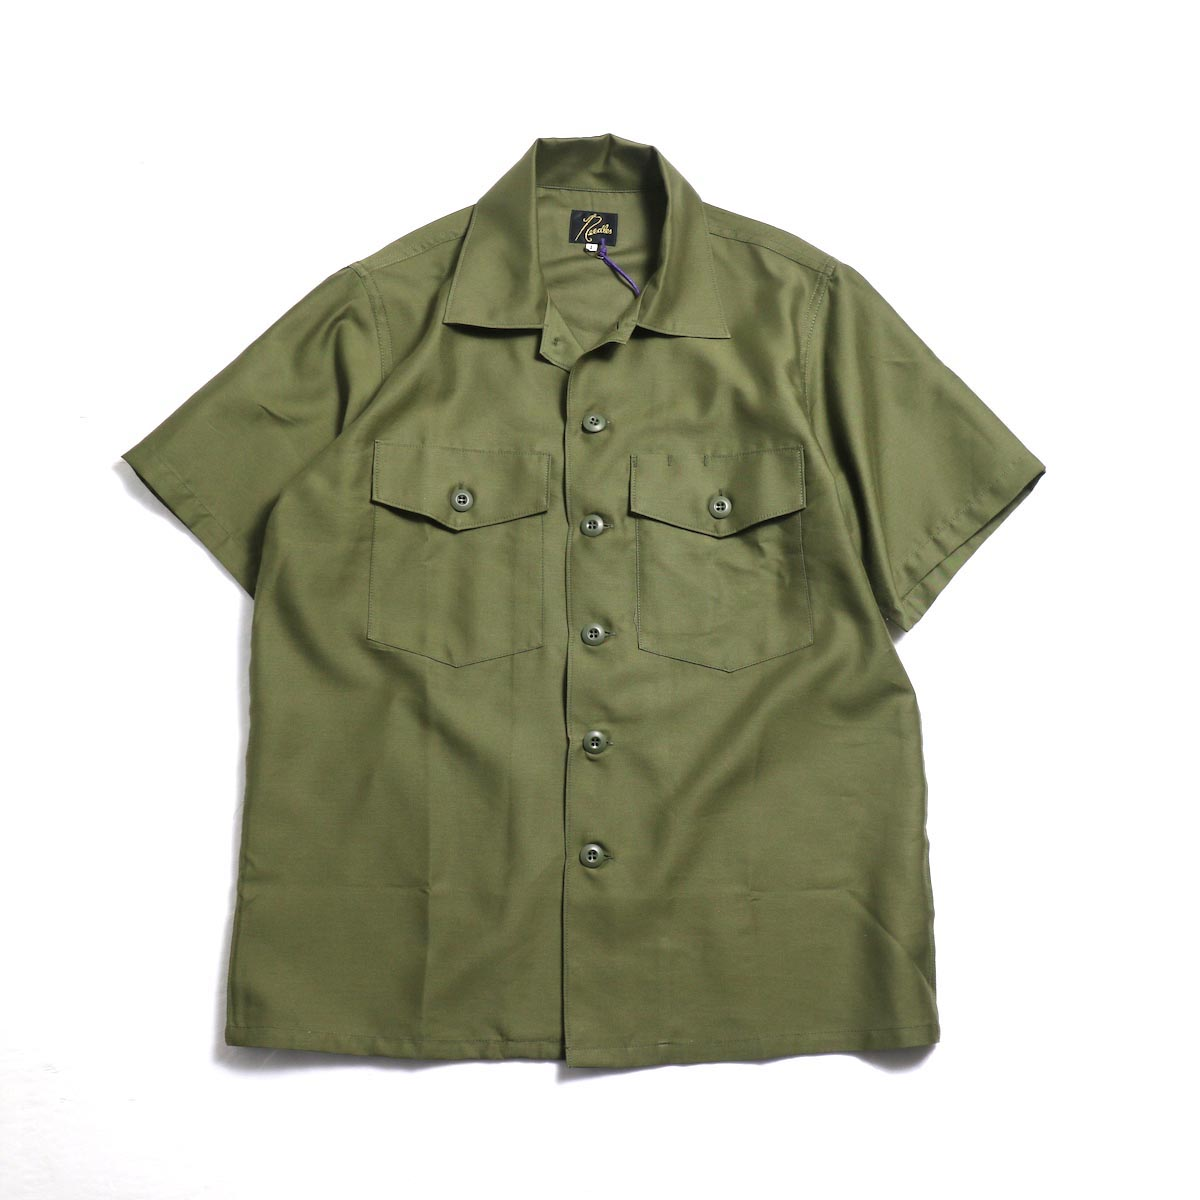 Needles Women / S/S Army Shirt -T/C Back Sateen